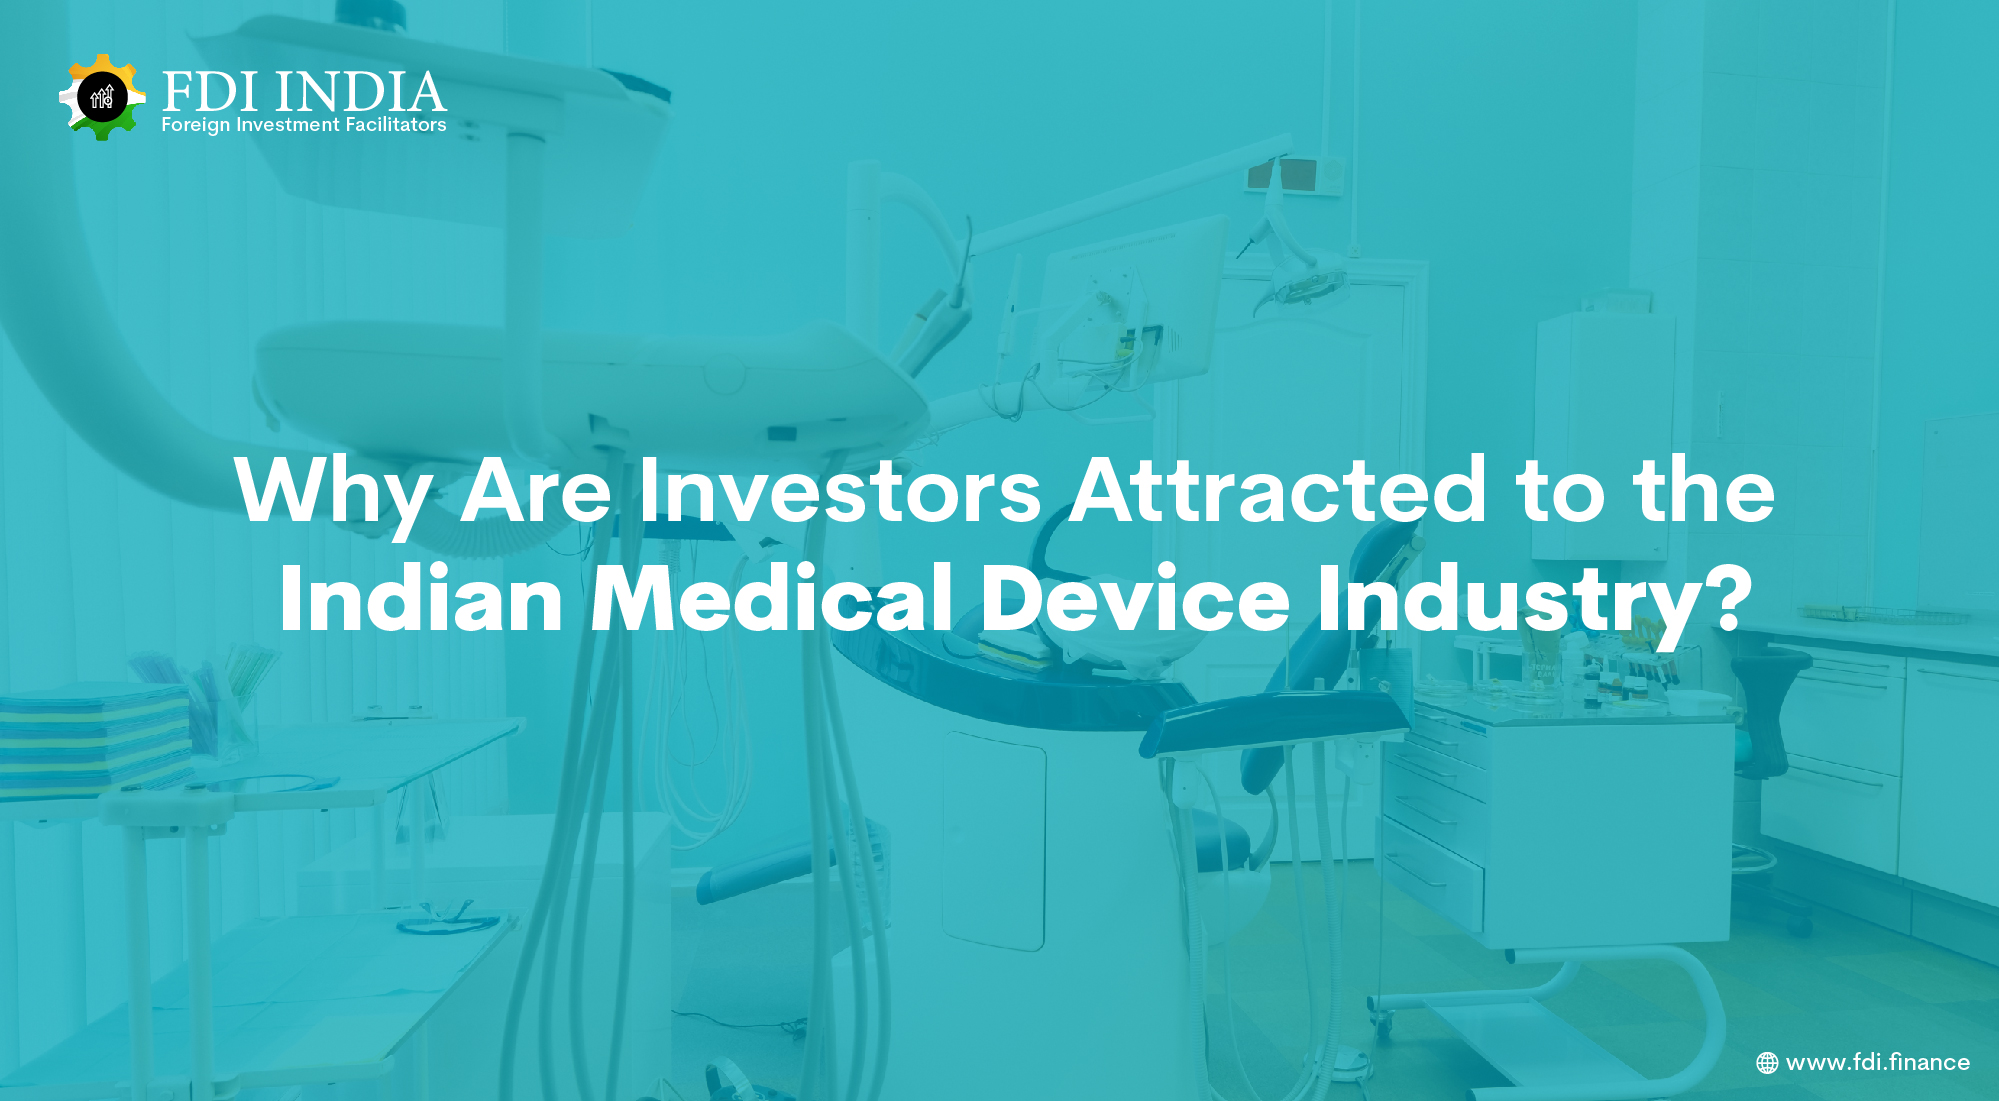 Why Are Investors Attracted to the Indian Medical Device Industry?